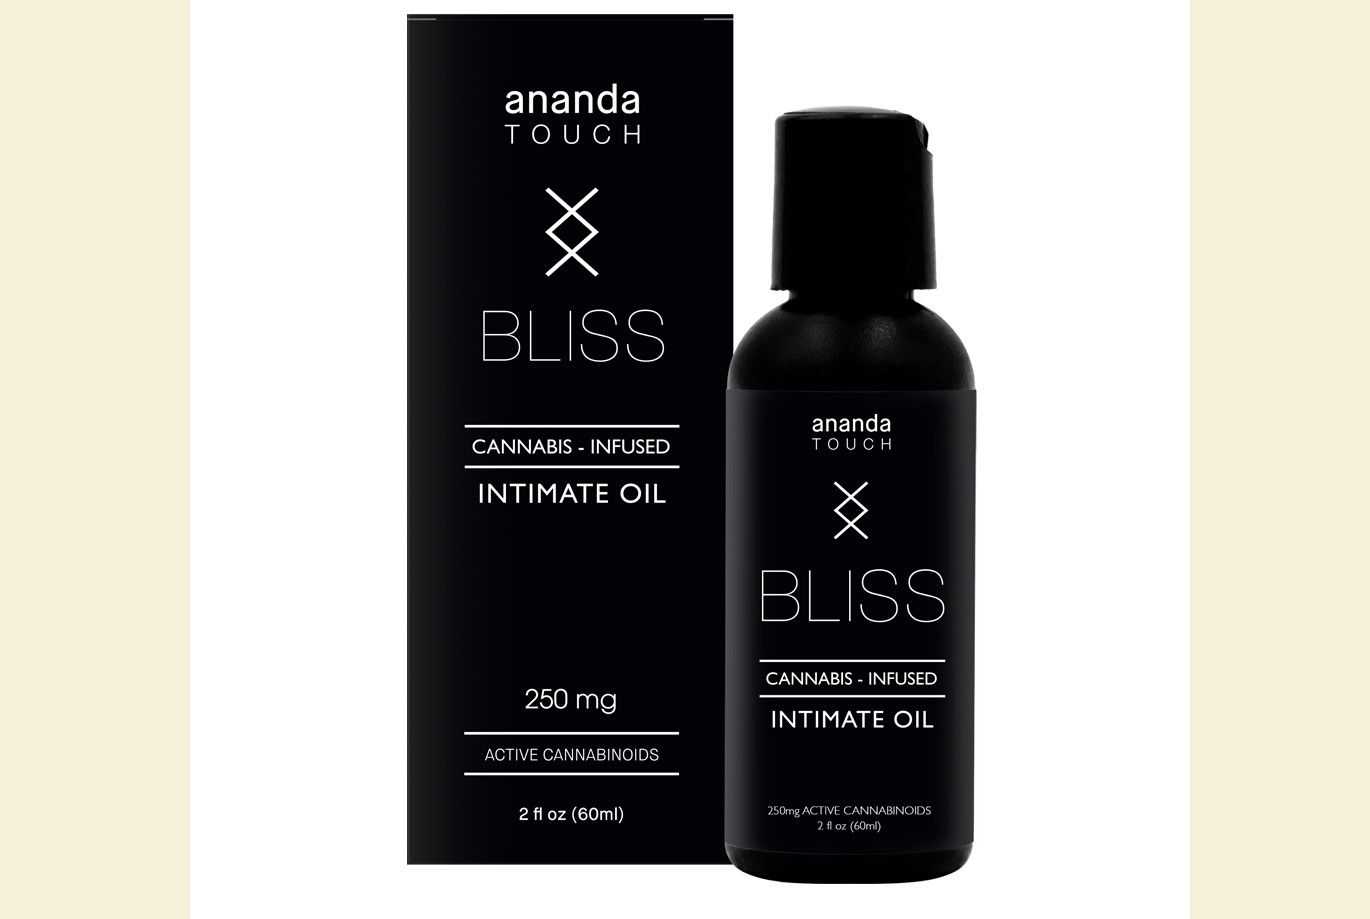 Ananda_Touch_Bliss_Intimate_Oil